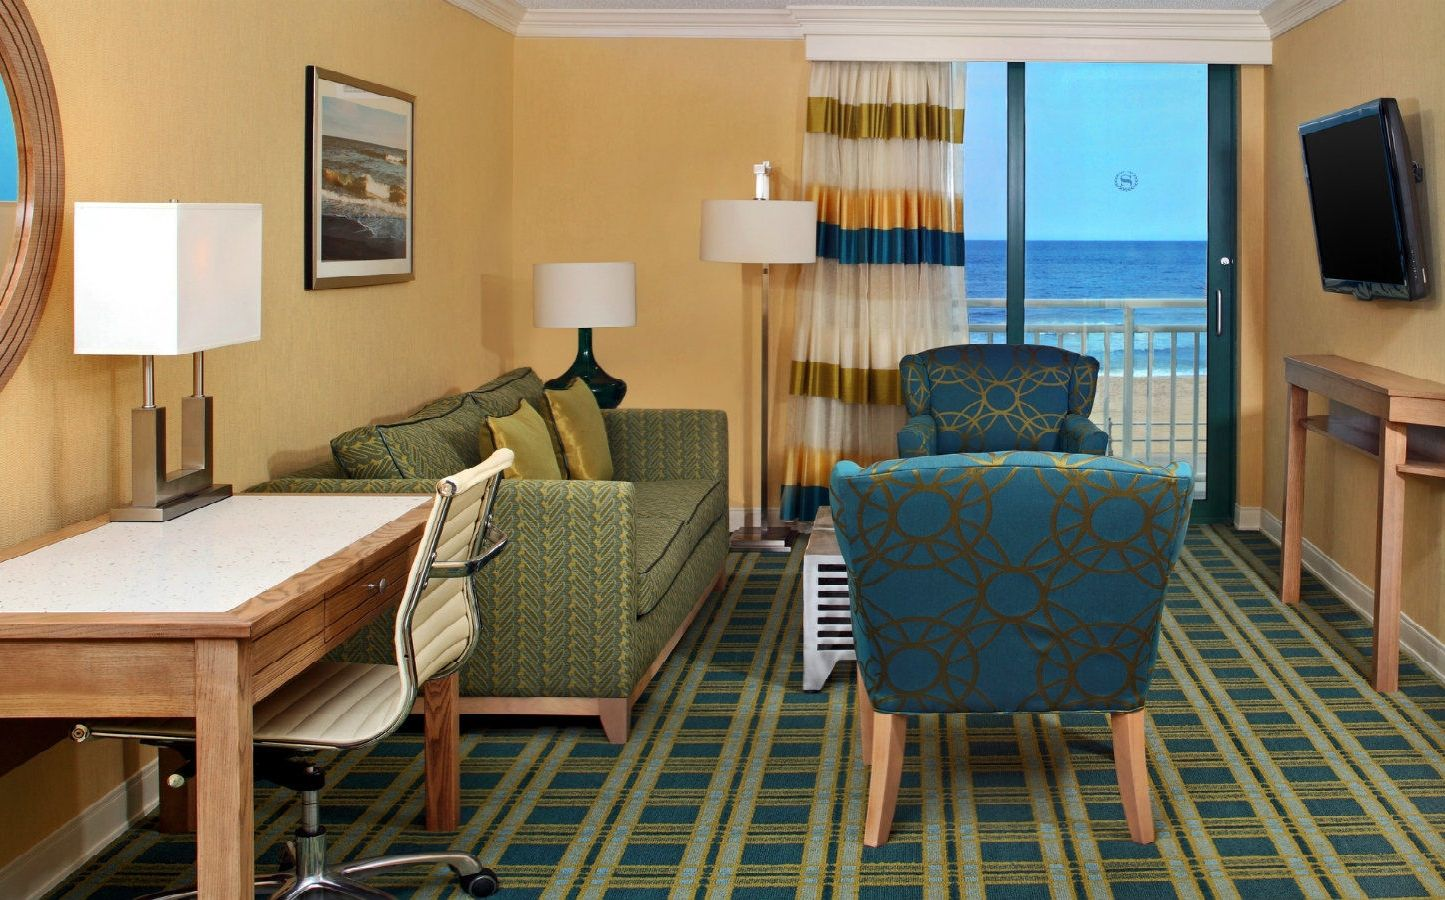 Hotels With 3 Bedroom Suites In Virginia Beach 3421 Atlantic Ave Virginia Beach Va 23451